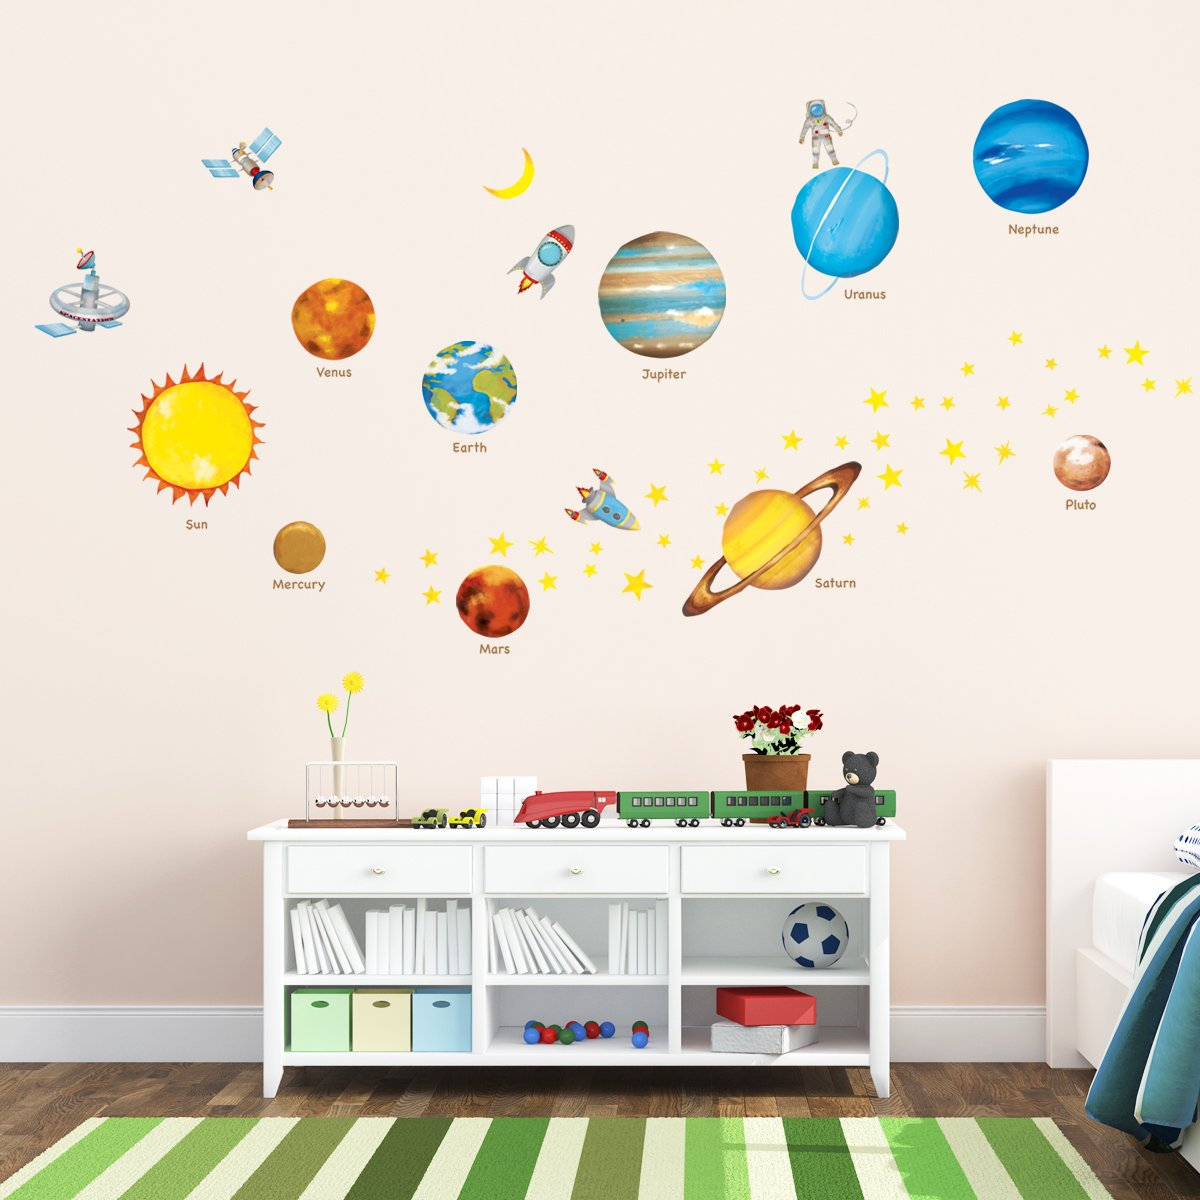 Amazon.com: Decowall DW 1307 Planets In The Space Kids Wall Decals Wall  Stickers Peel And Stick Removable Wall Stickers For Kids Nursery Bedroom  Living ...